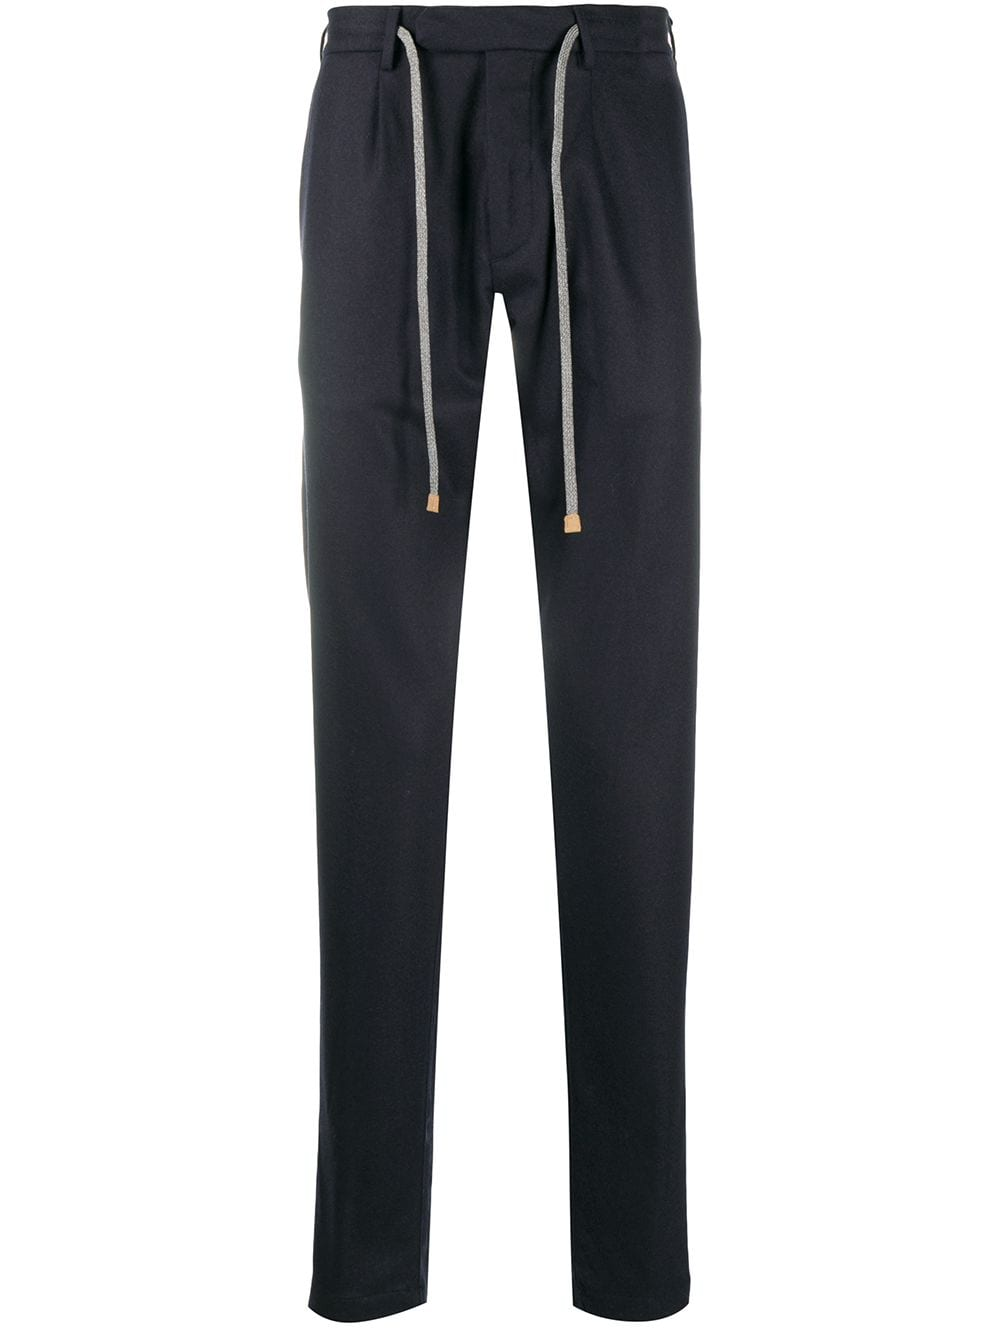 Blue cashmere-blend drawstring tailored trousers   ELEVENTY |  | B75PANB21-TES0B00611